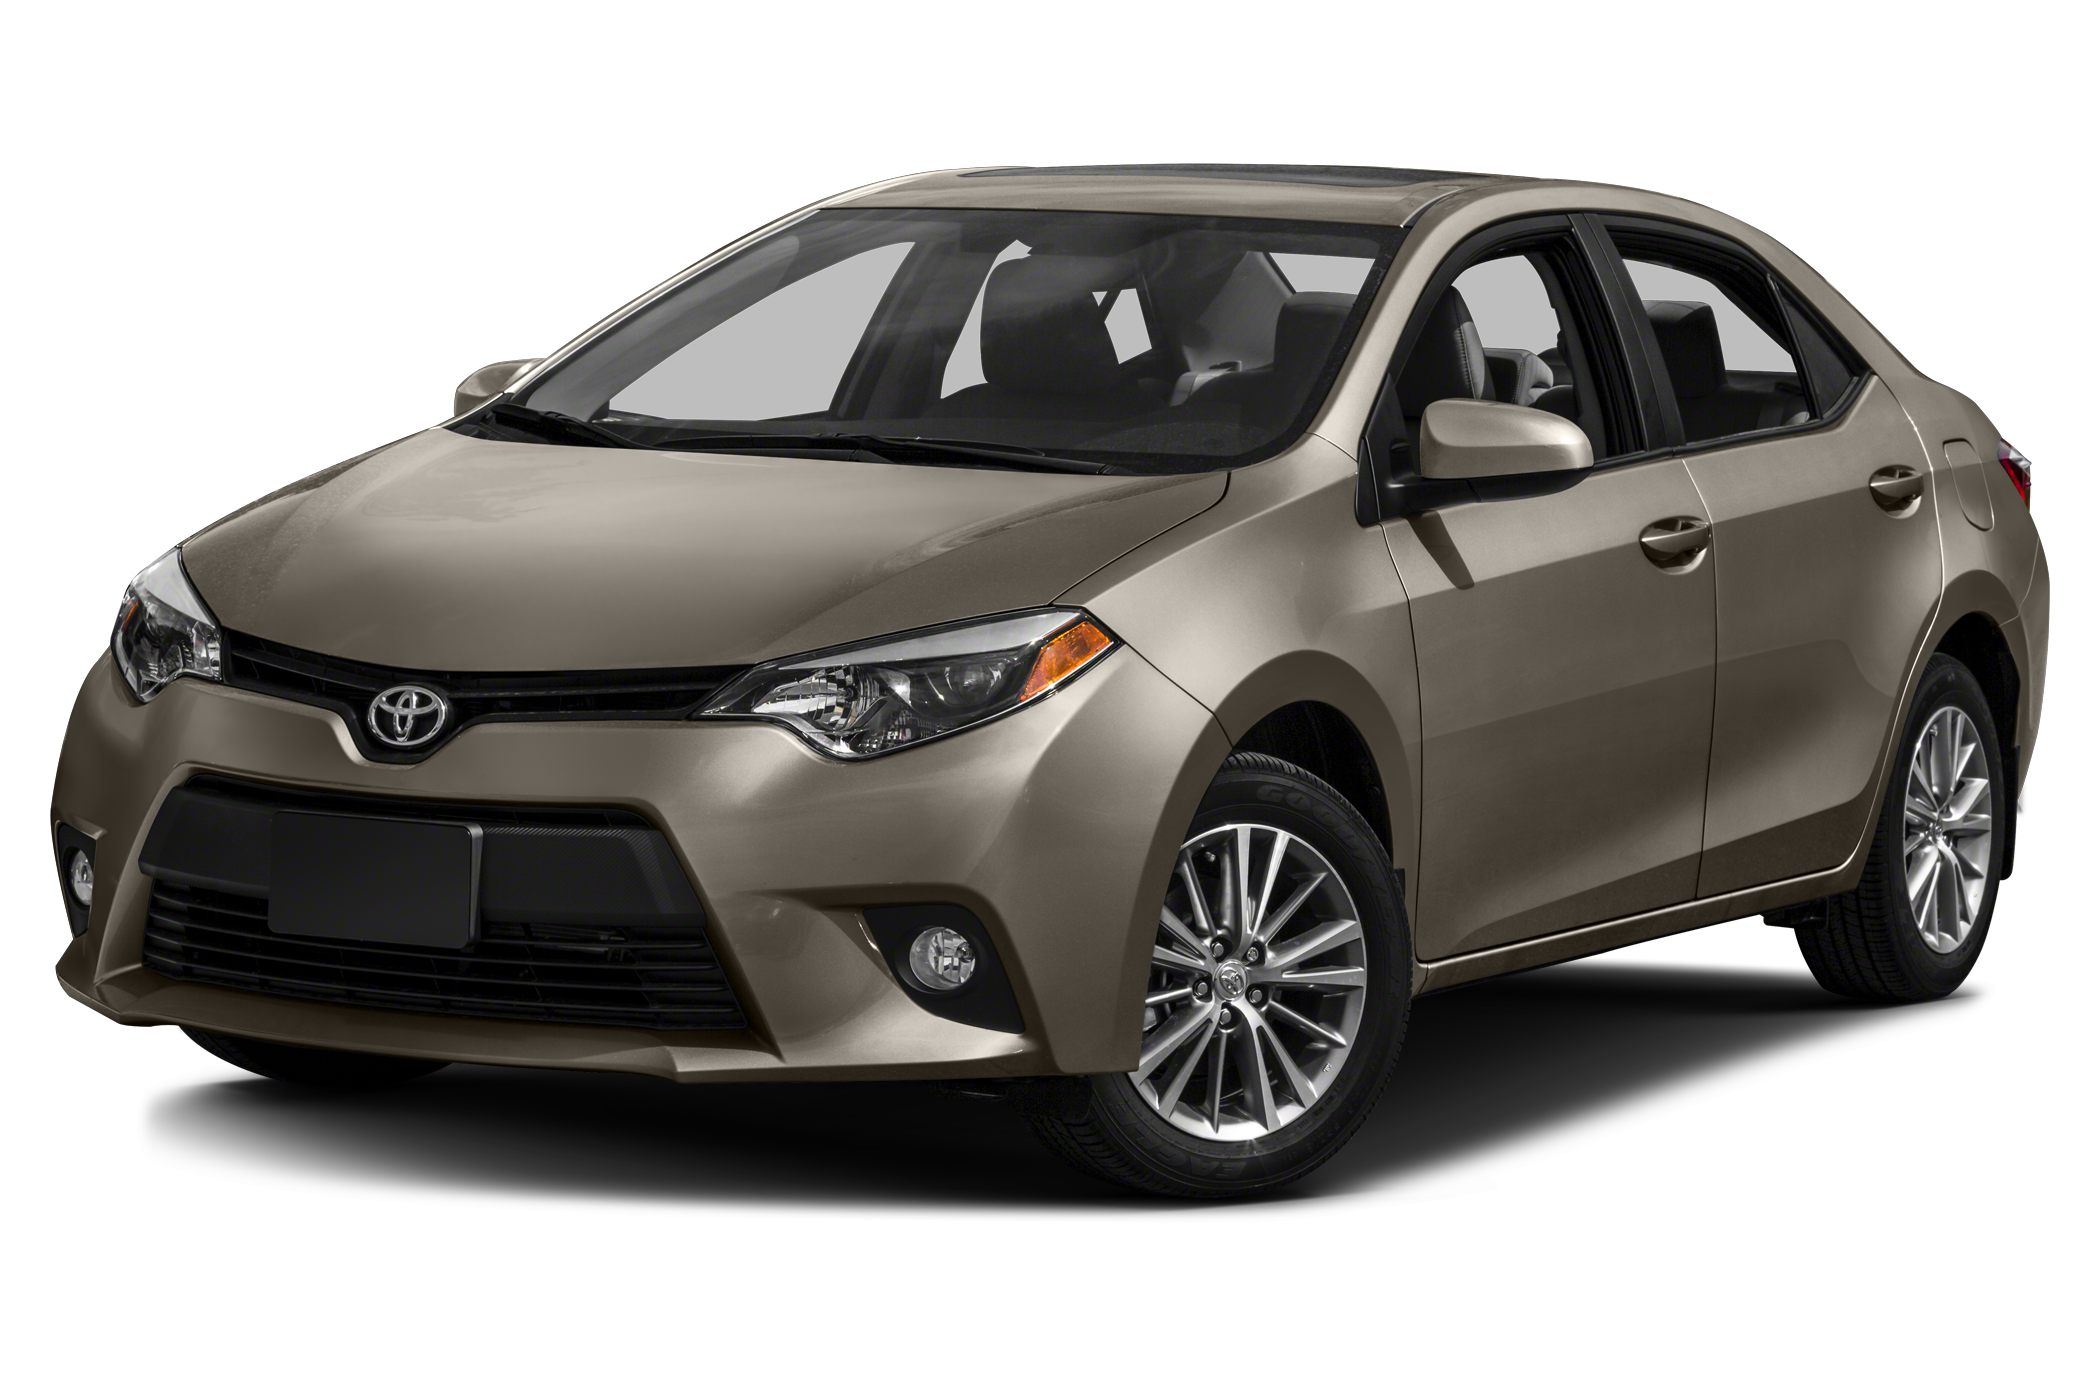 2014 Toyota Corolla LE Sedan for sale in Chicago for $16,995 with 18,268 miles